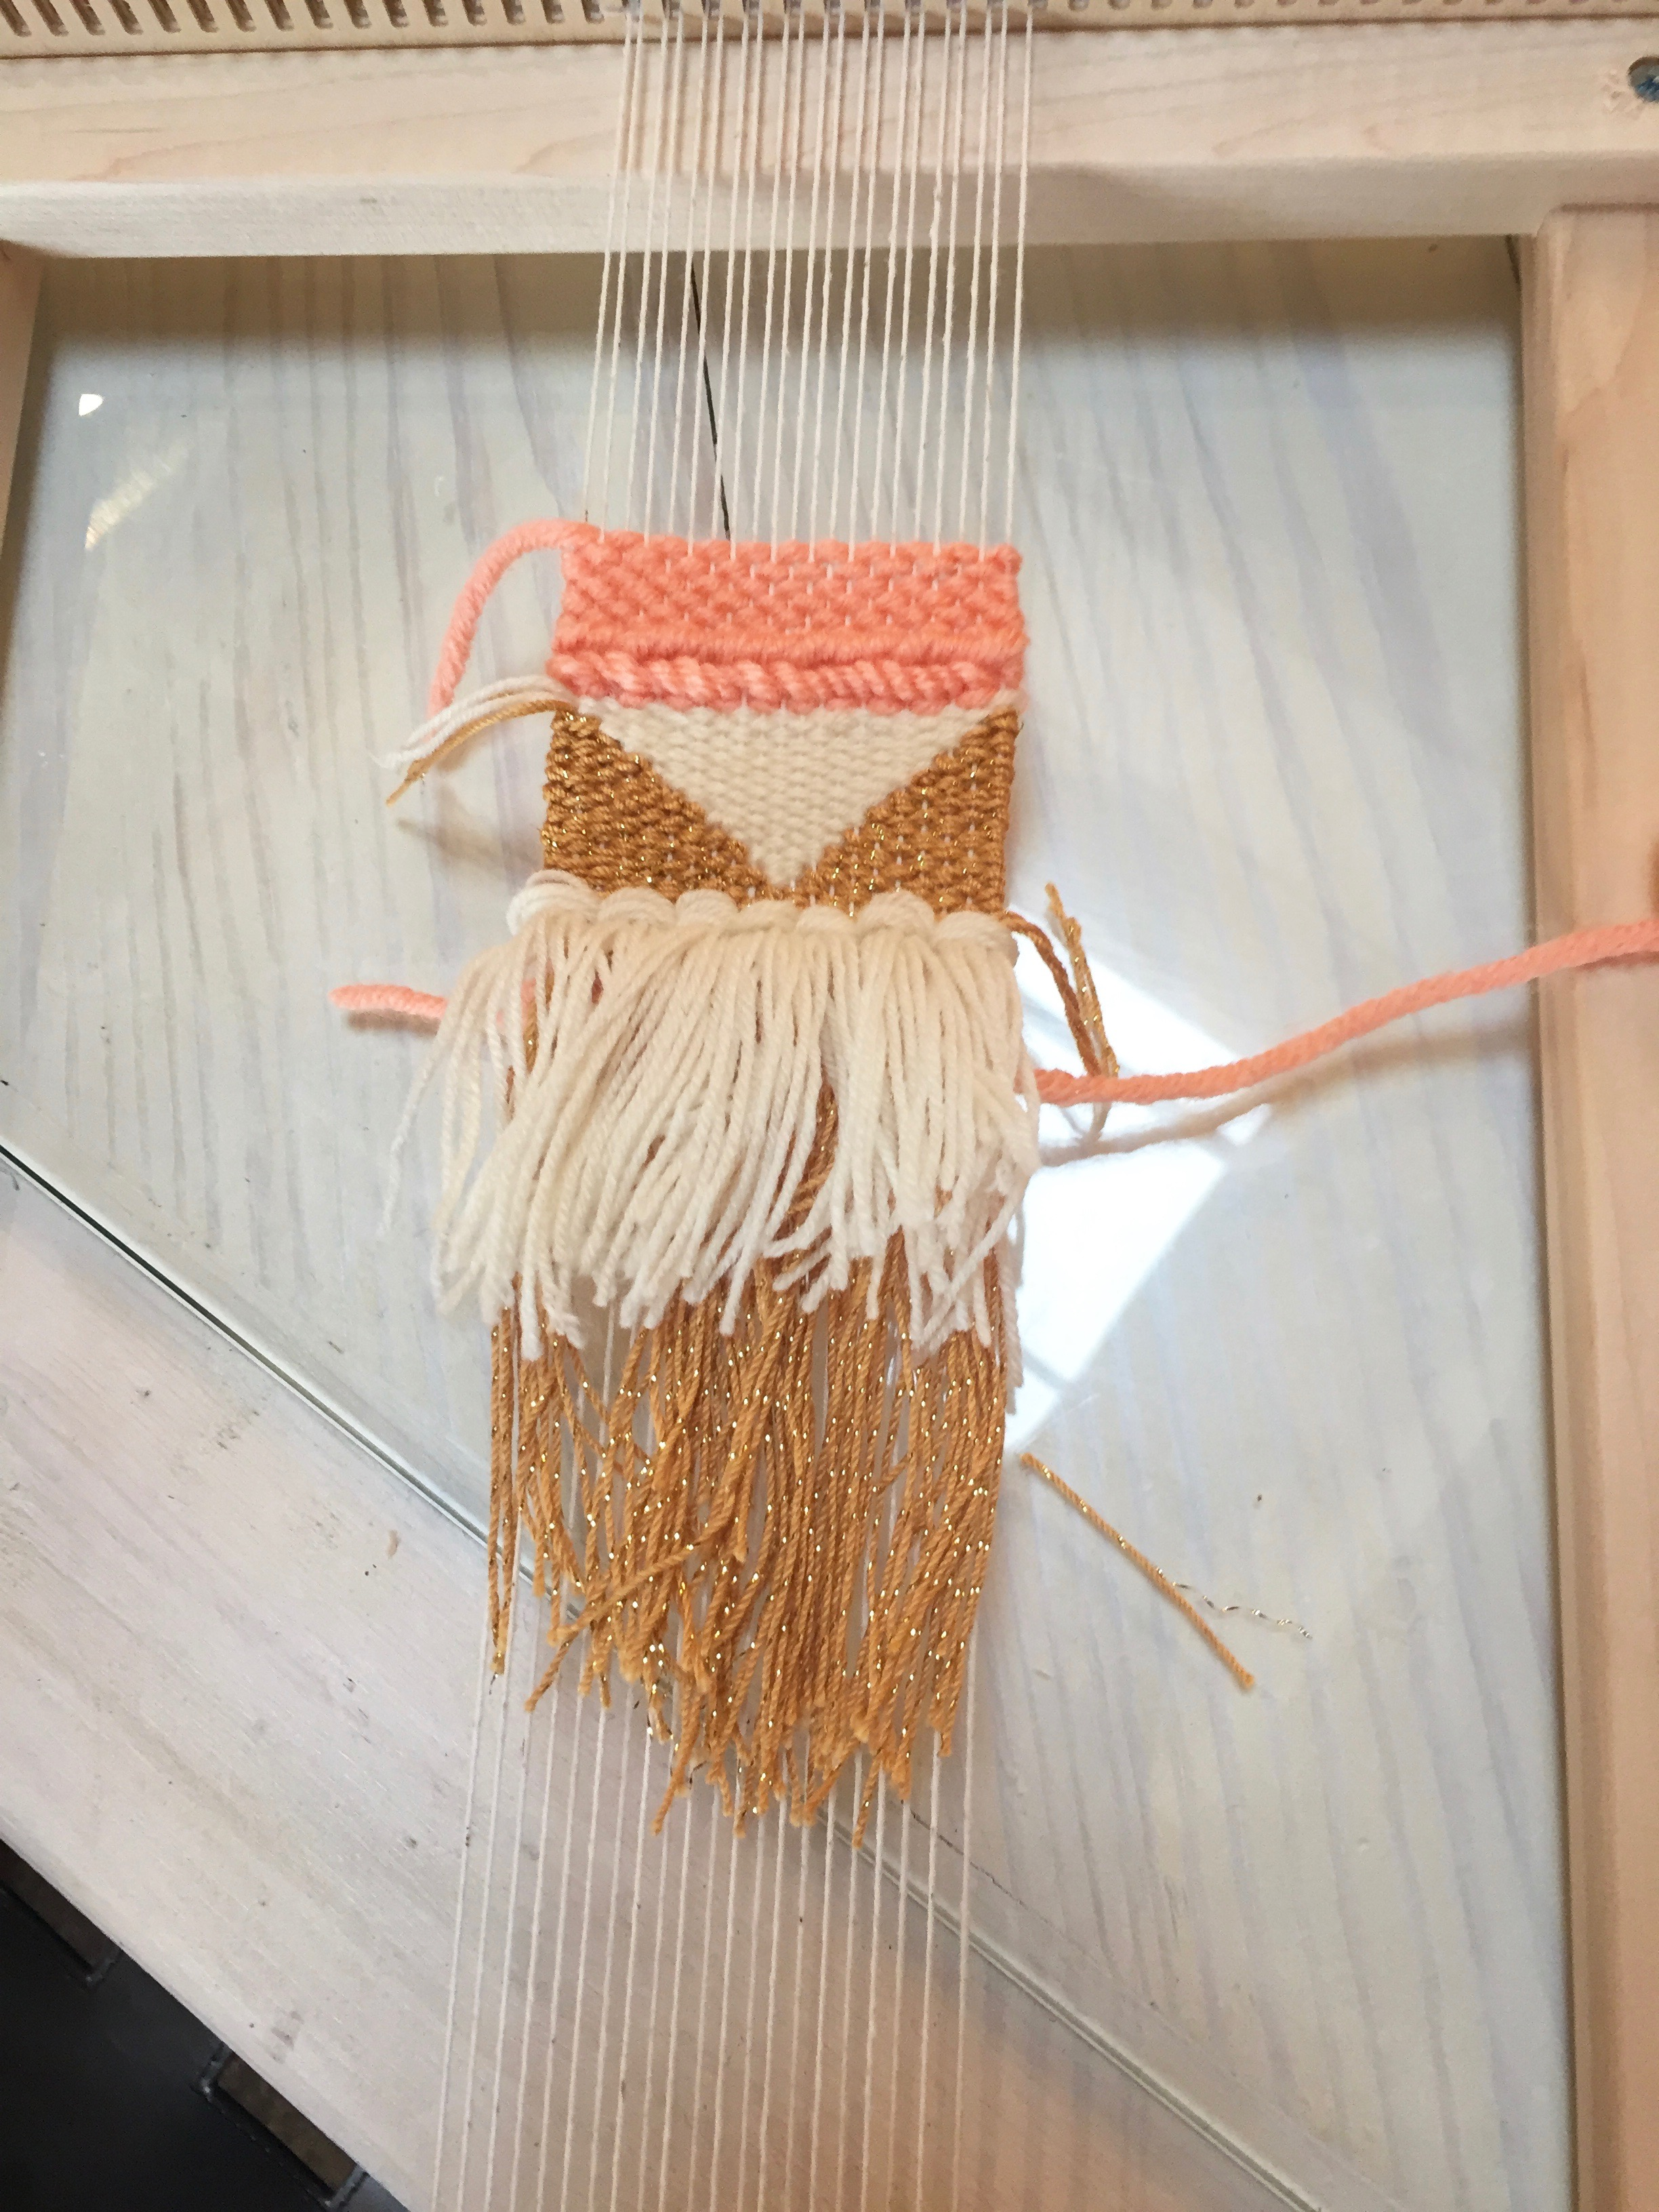 My finished weaving still on the loom, pre weaving in the ends.